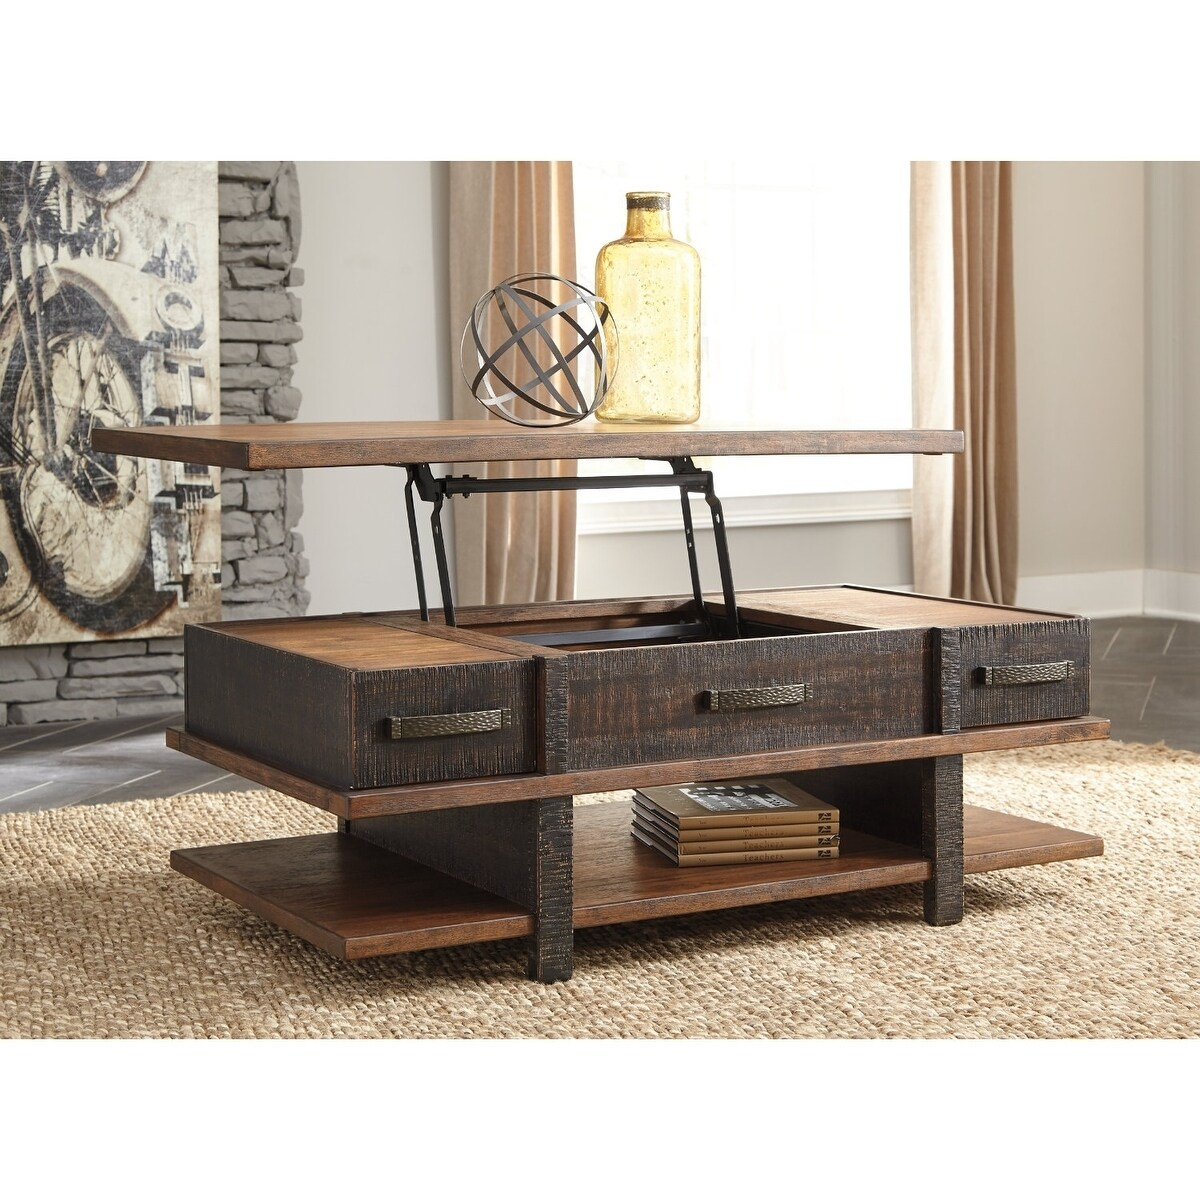 Shop stanah two tone coffee table with lift top free shipping today overstock com 20966020